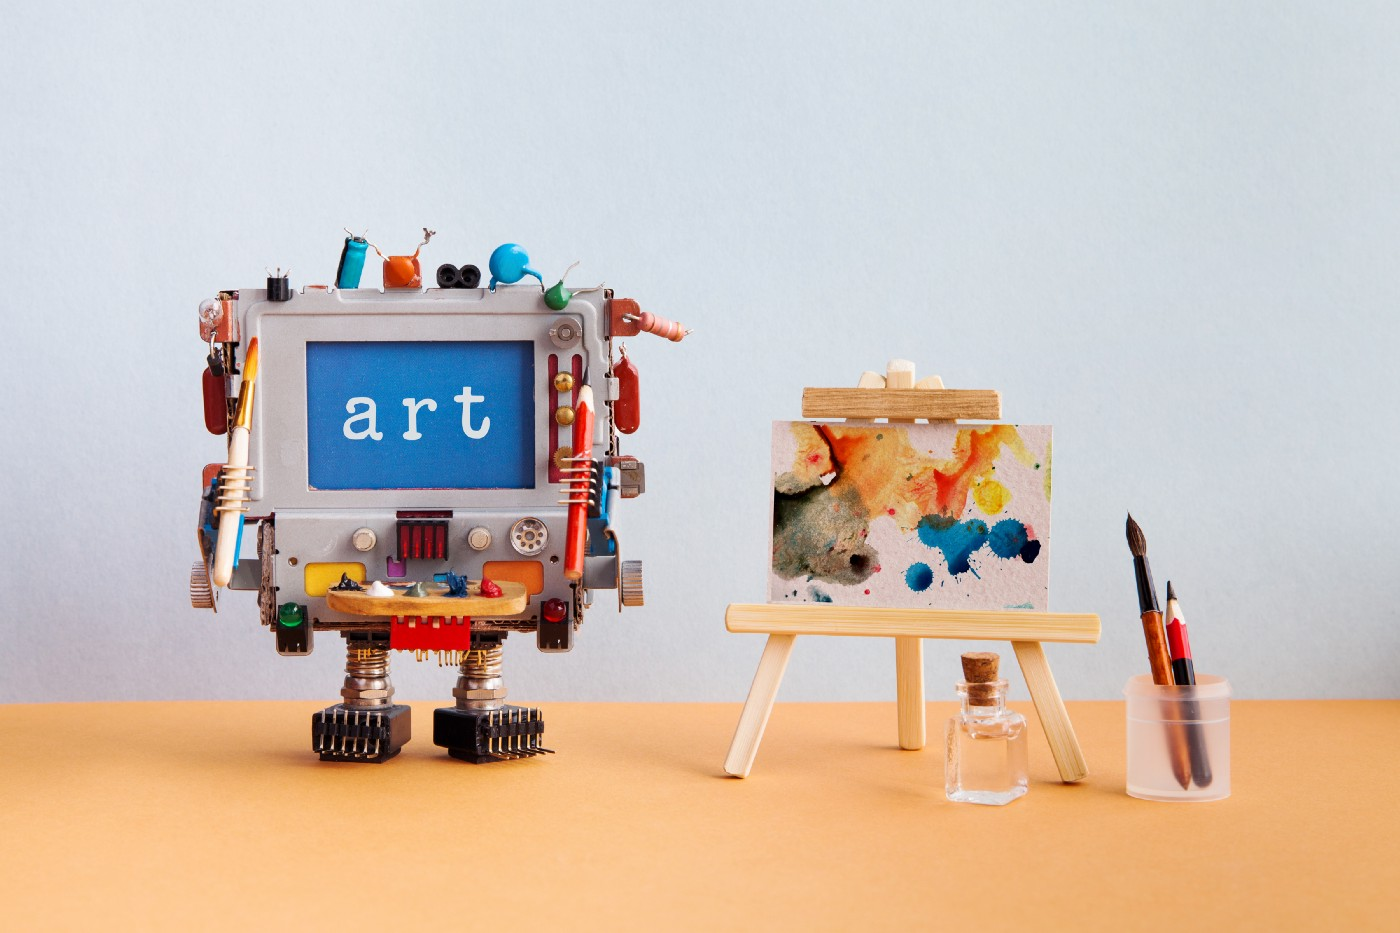 """Art"" written on a small creation made to look like a machine next to a small painting."